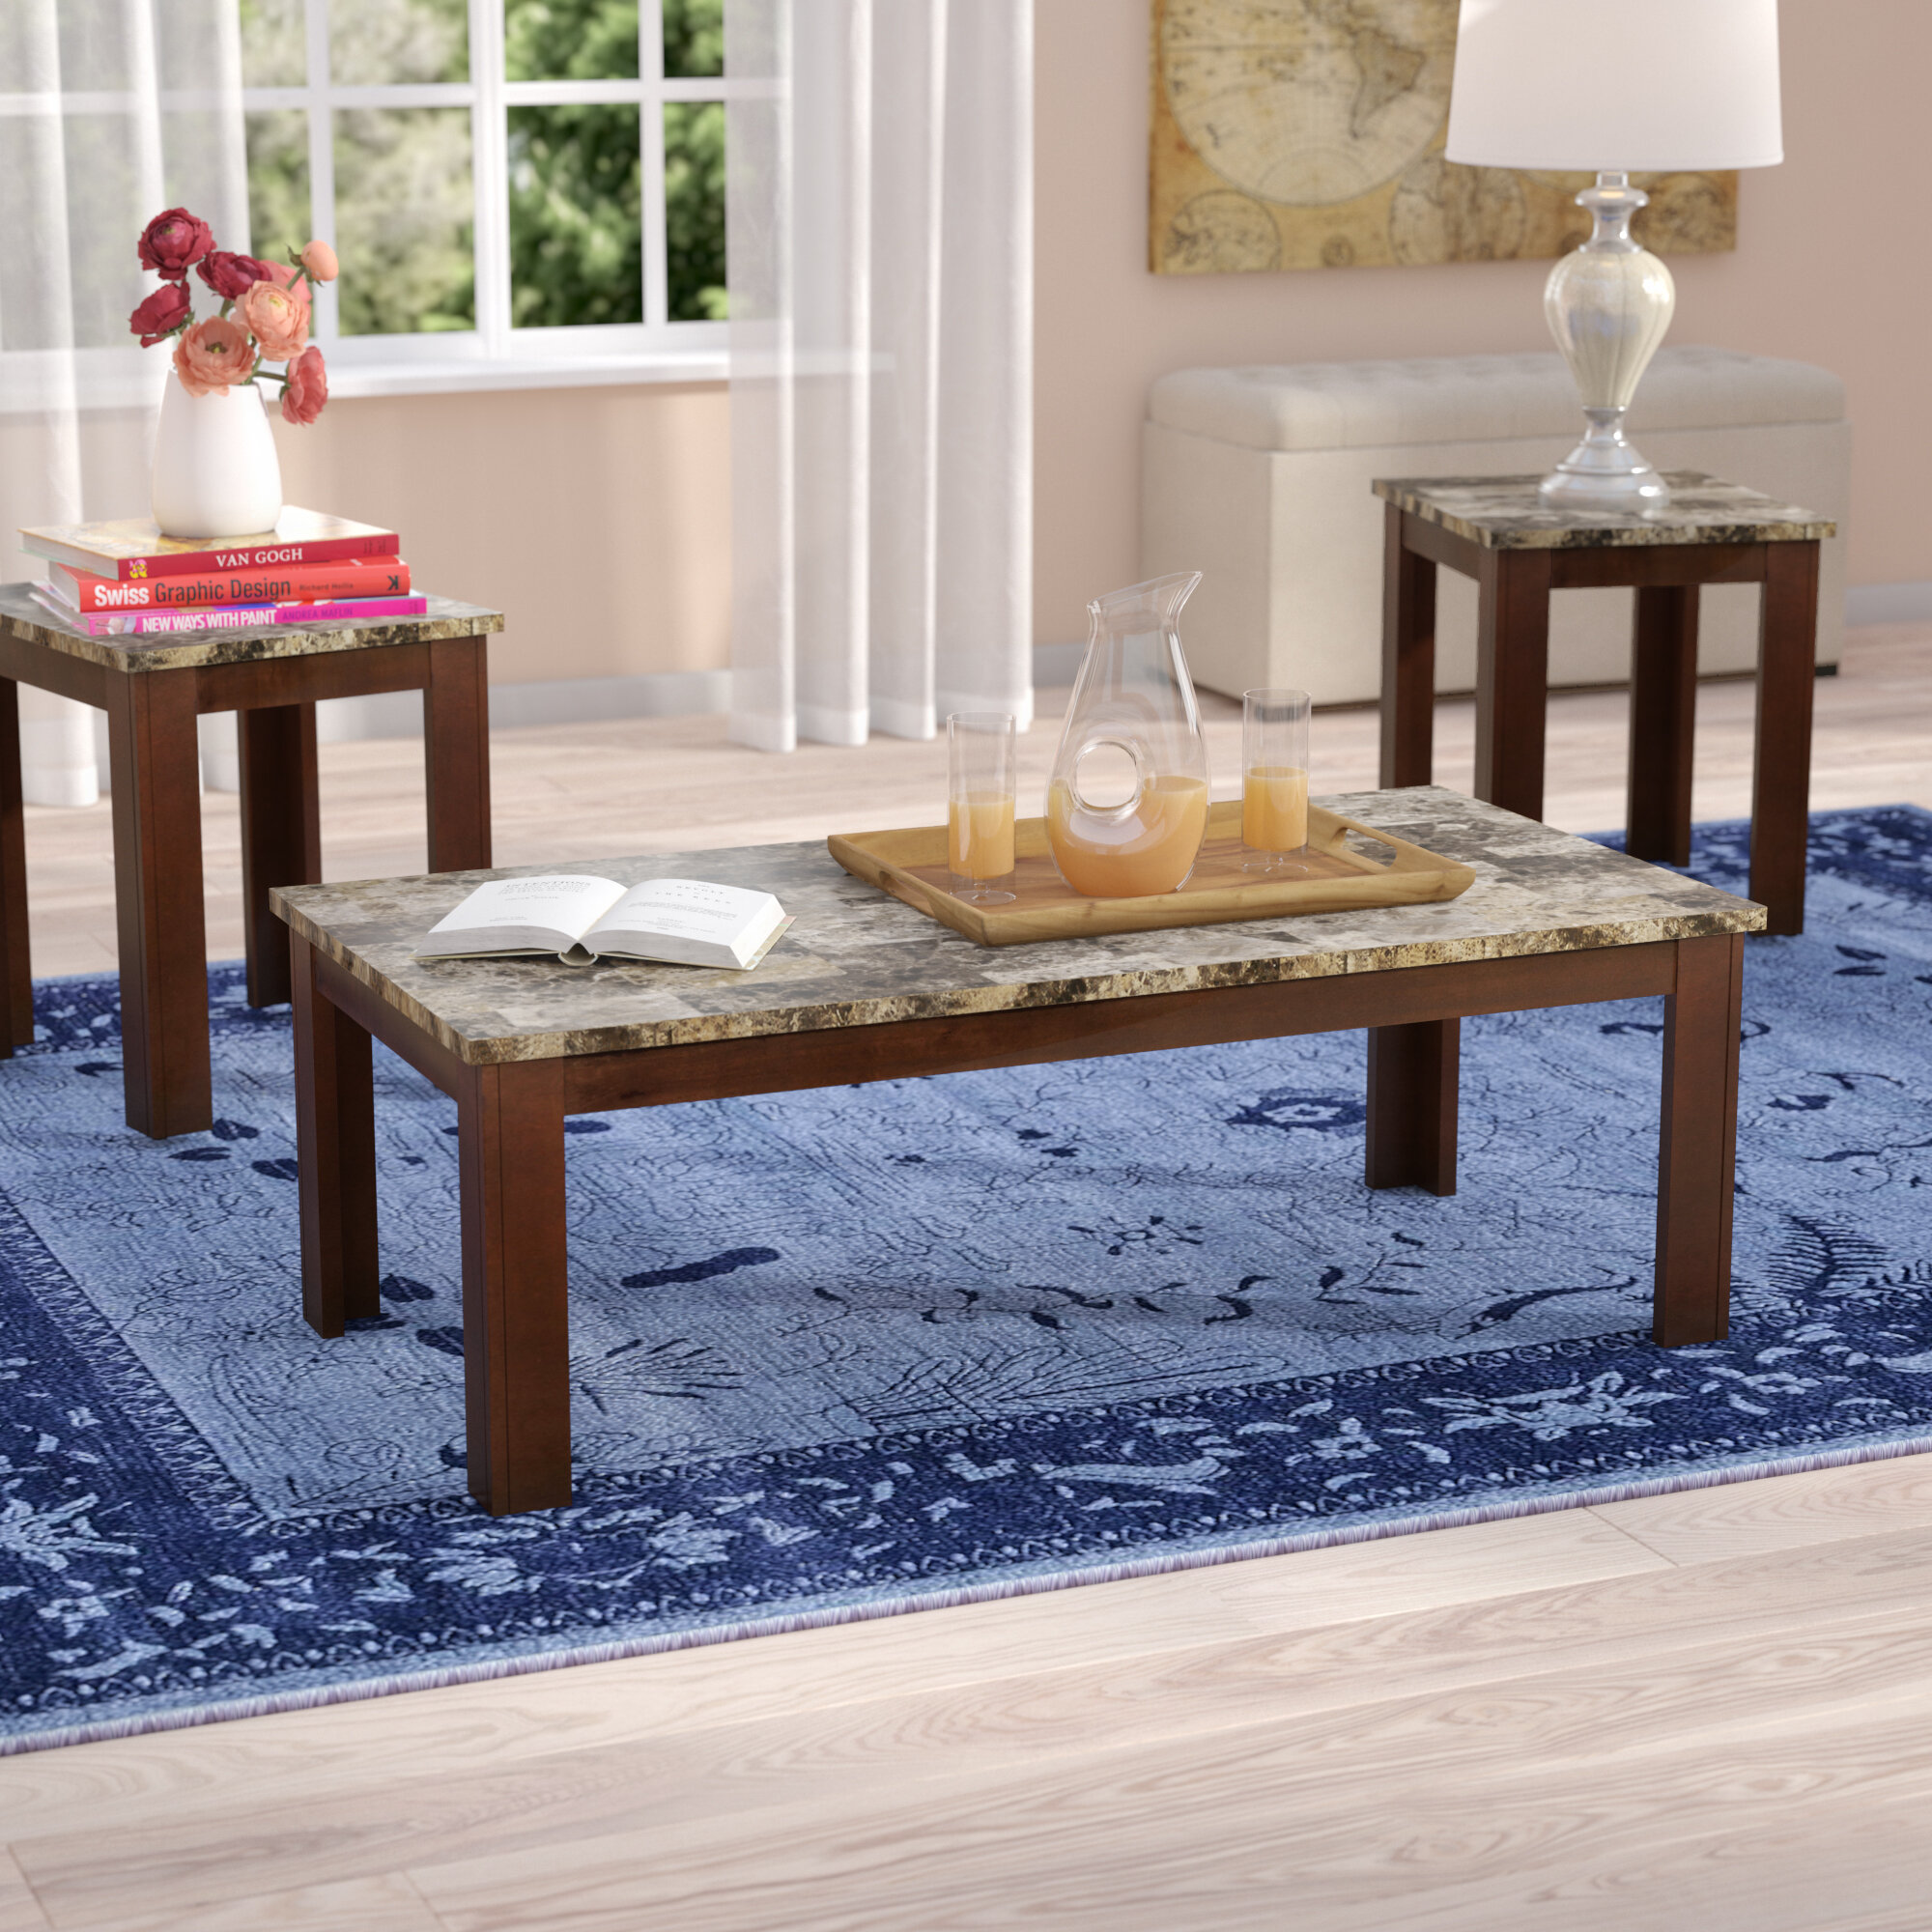 Charlton Home Colmer 3 Piece Coffee Table Set in Brown & Reviews